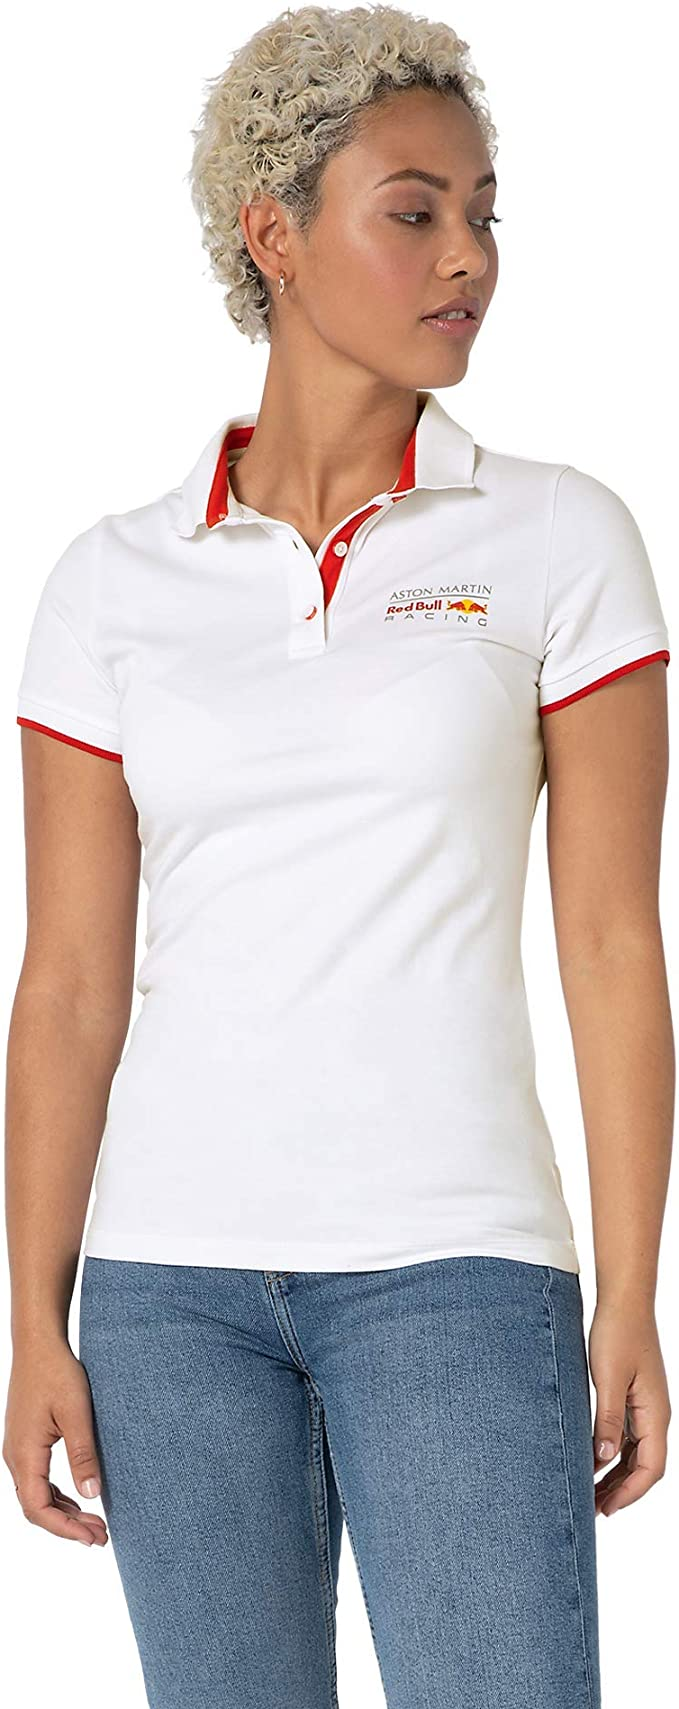 Red Bull Racing Classic Camisa Polo, Mujeres Large - Original Merchandise